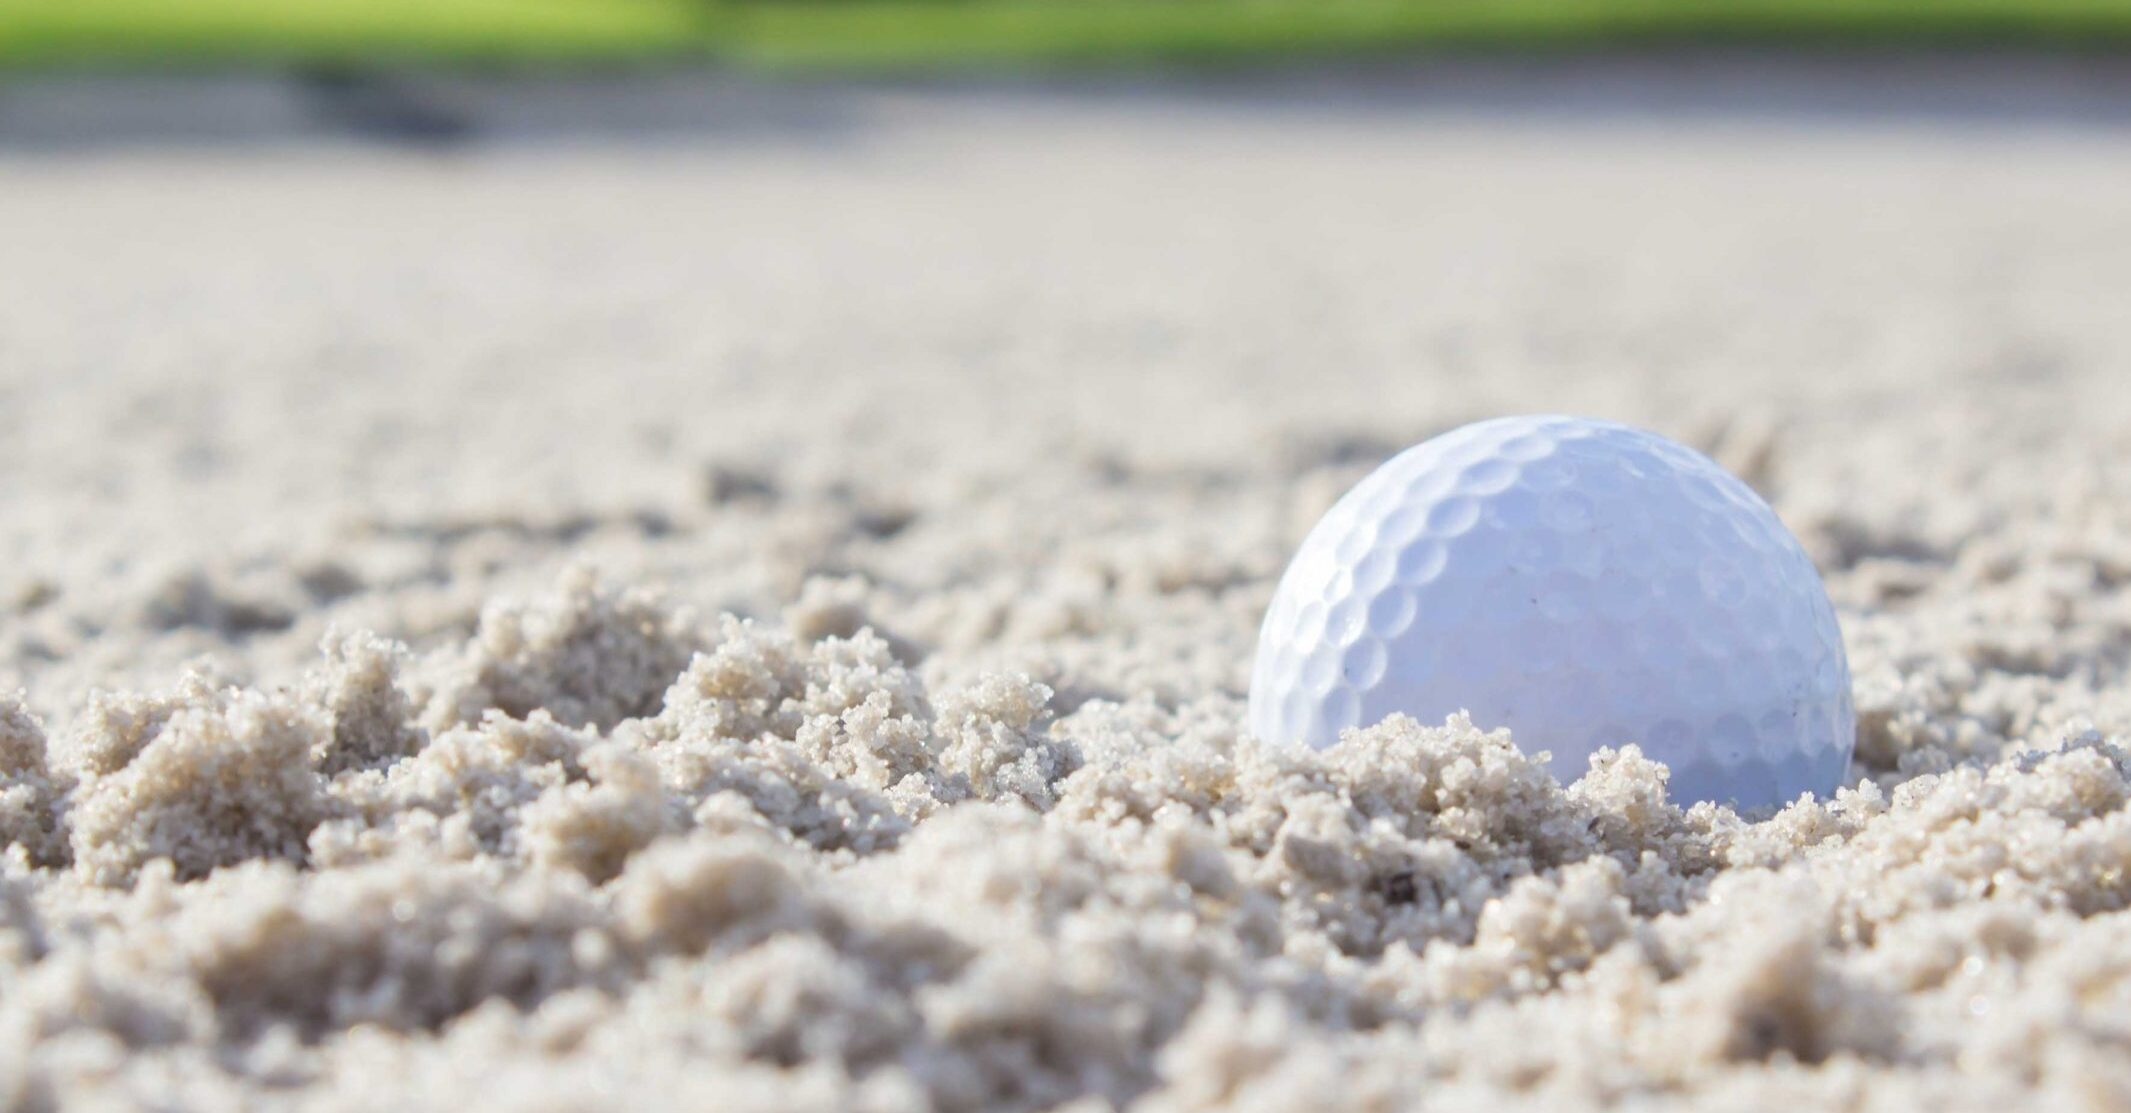 golf ball sits in sand bunker on golf course